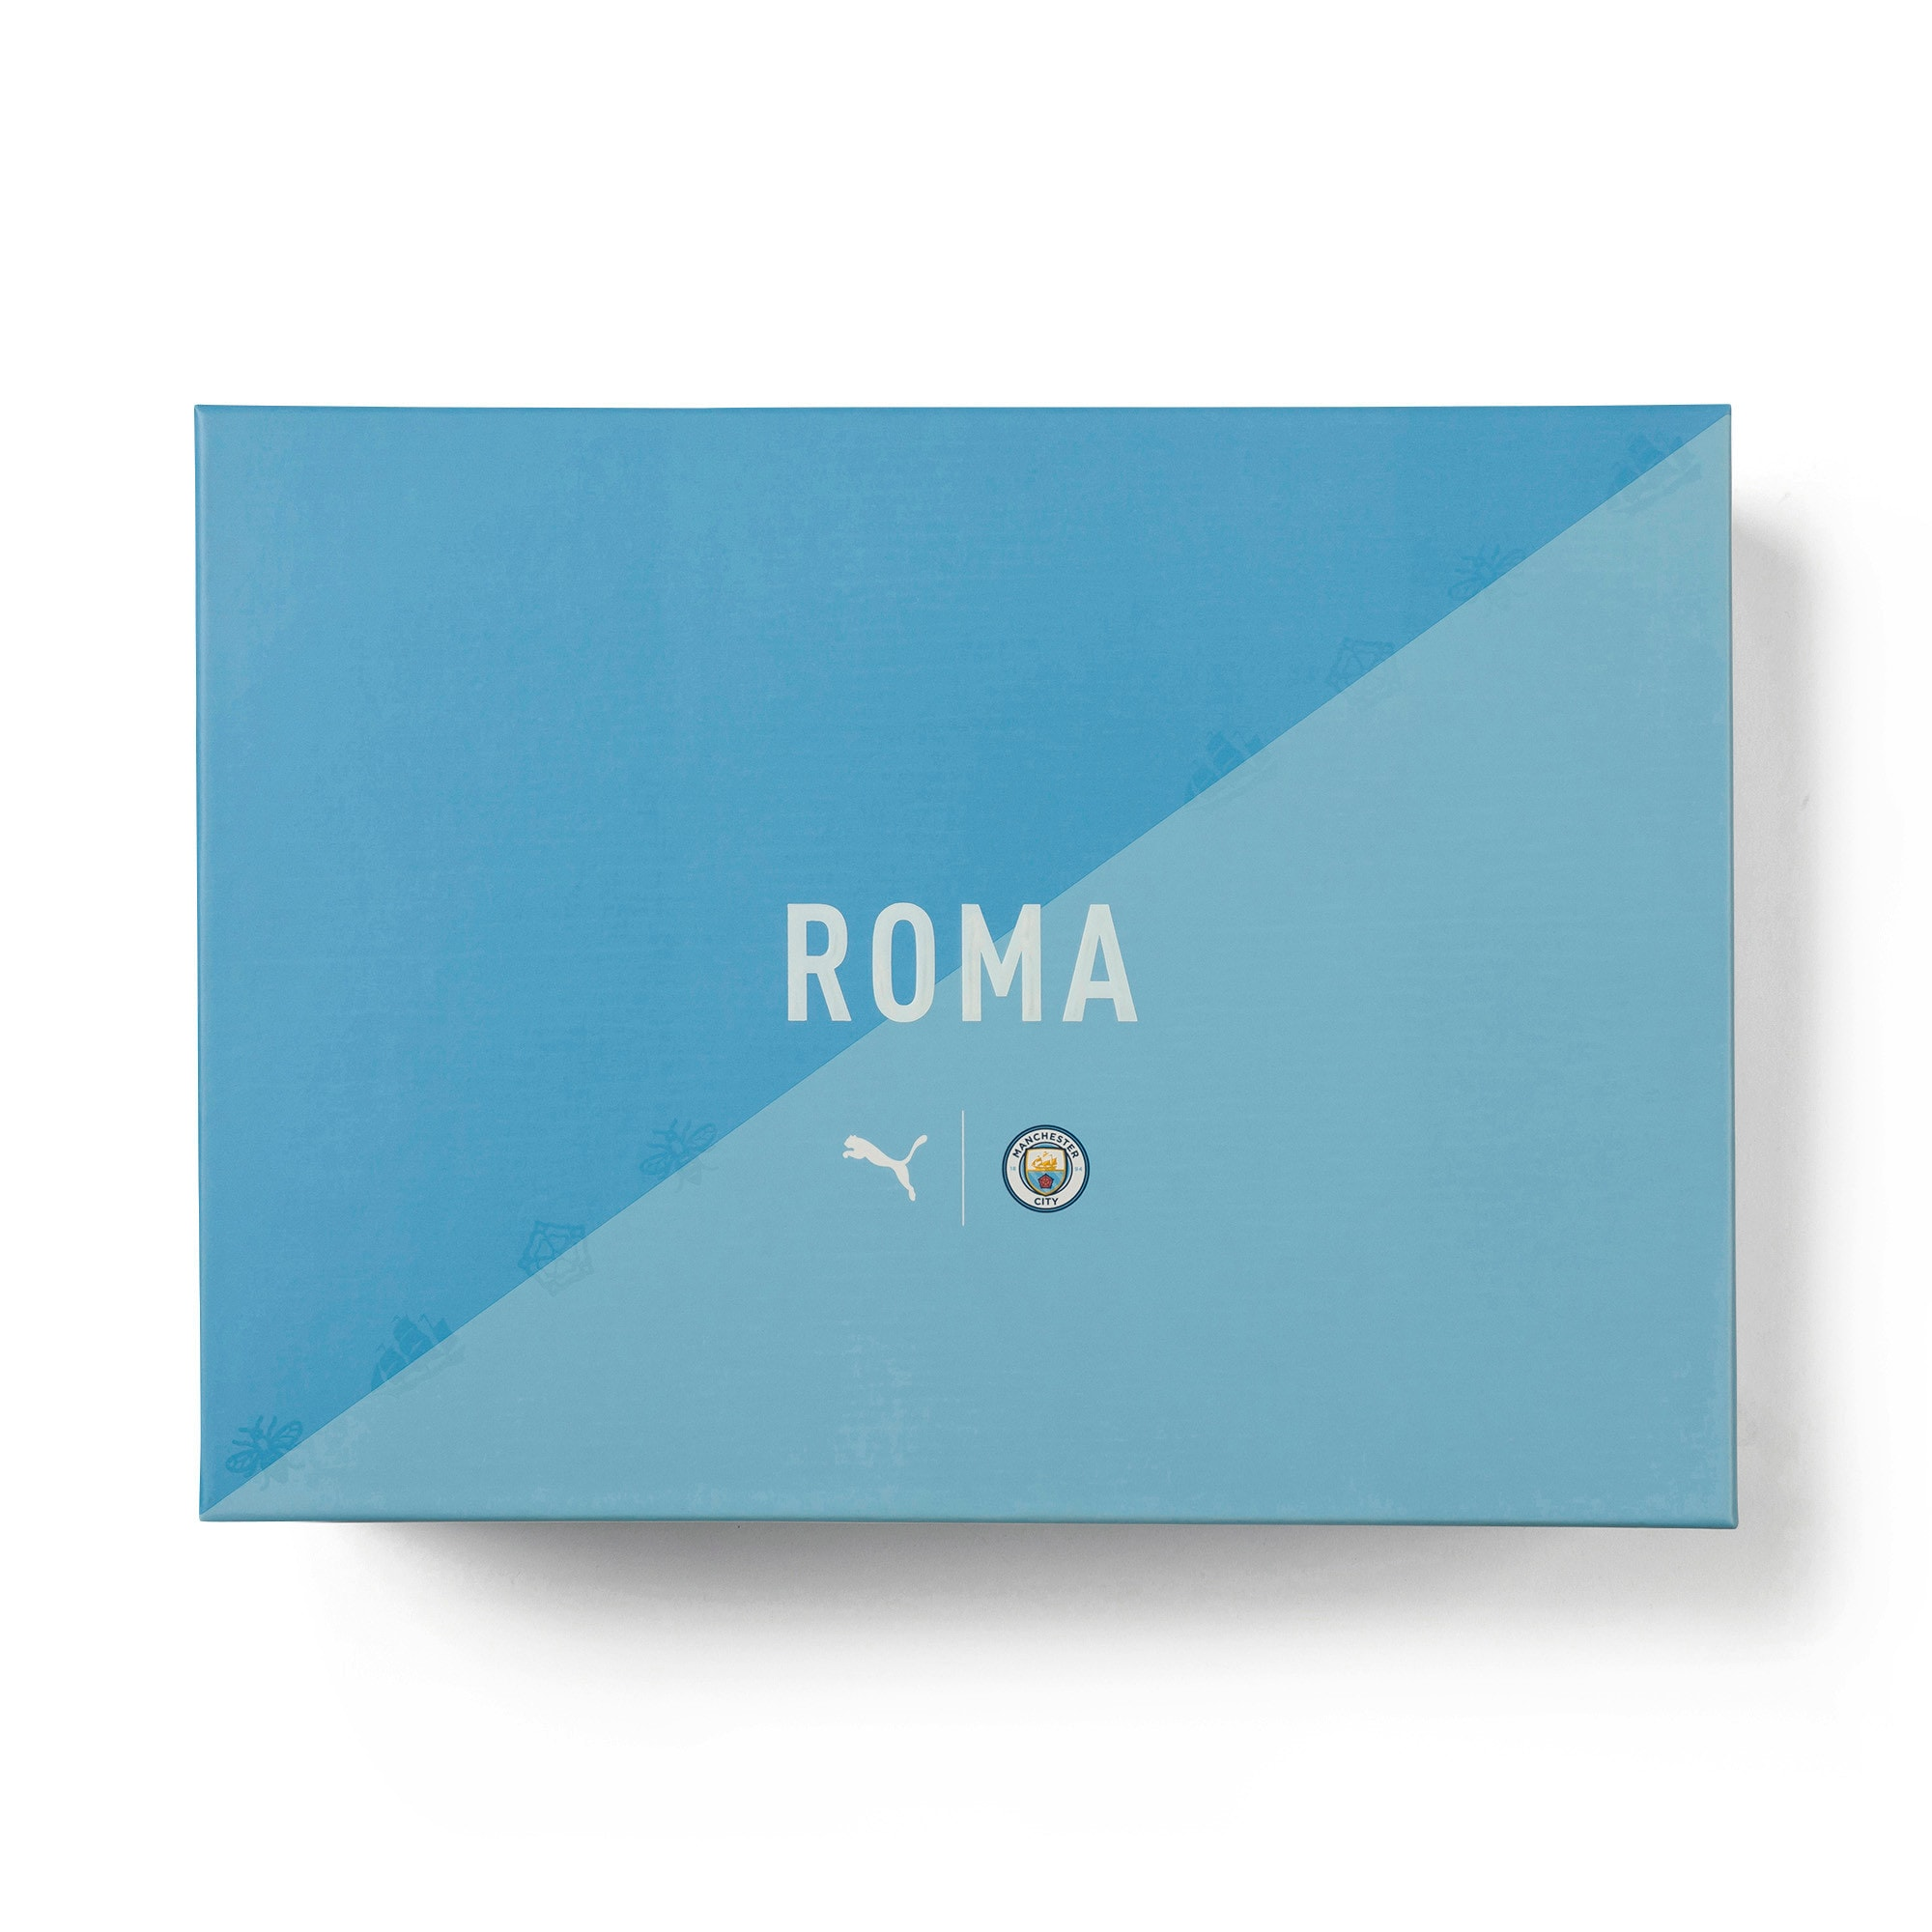 Thumbnail 7 of Roma x Manchester City Trainers, Gray Violet-Team Light Blue, medium